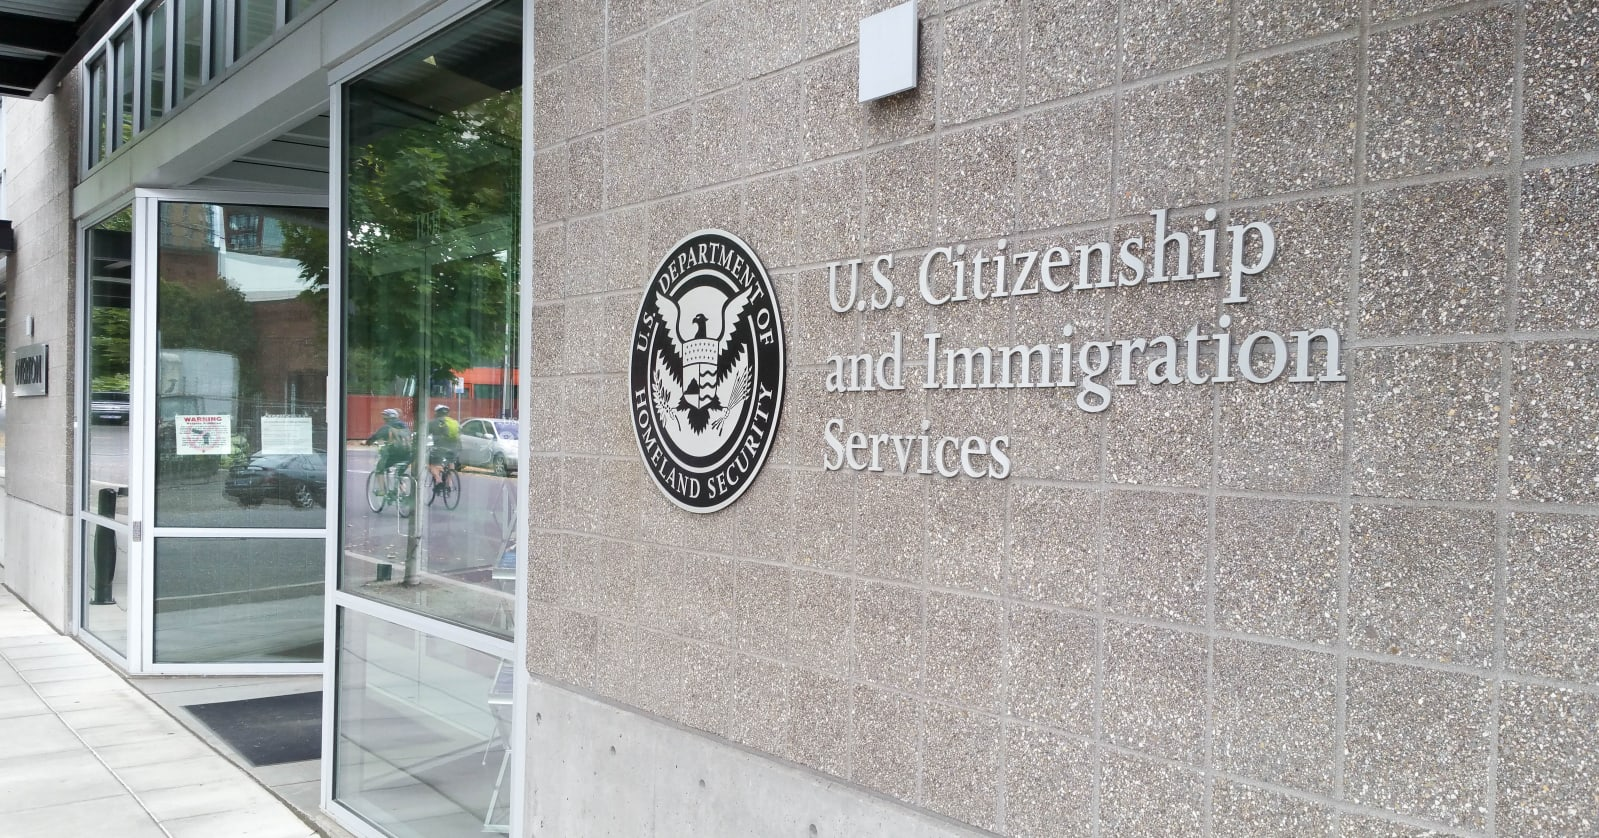 U.S. Citizenship and Immigration Services Office (USCIS)